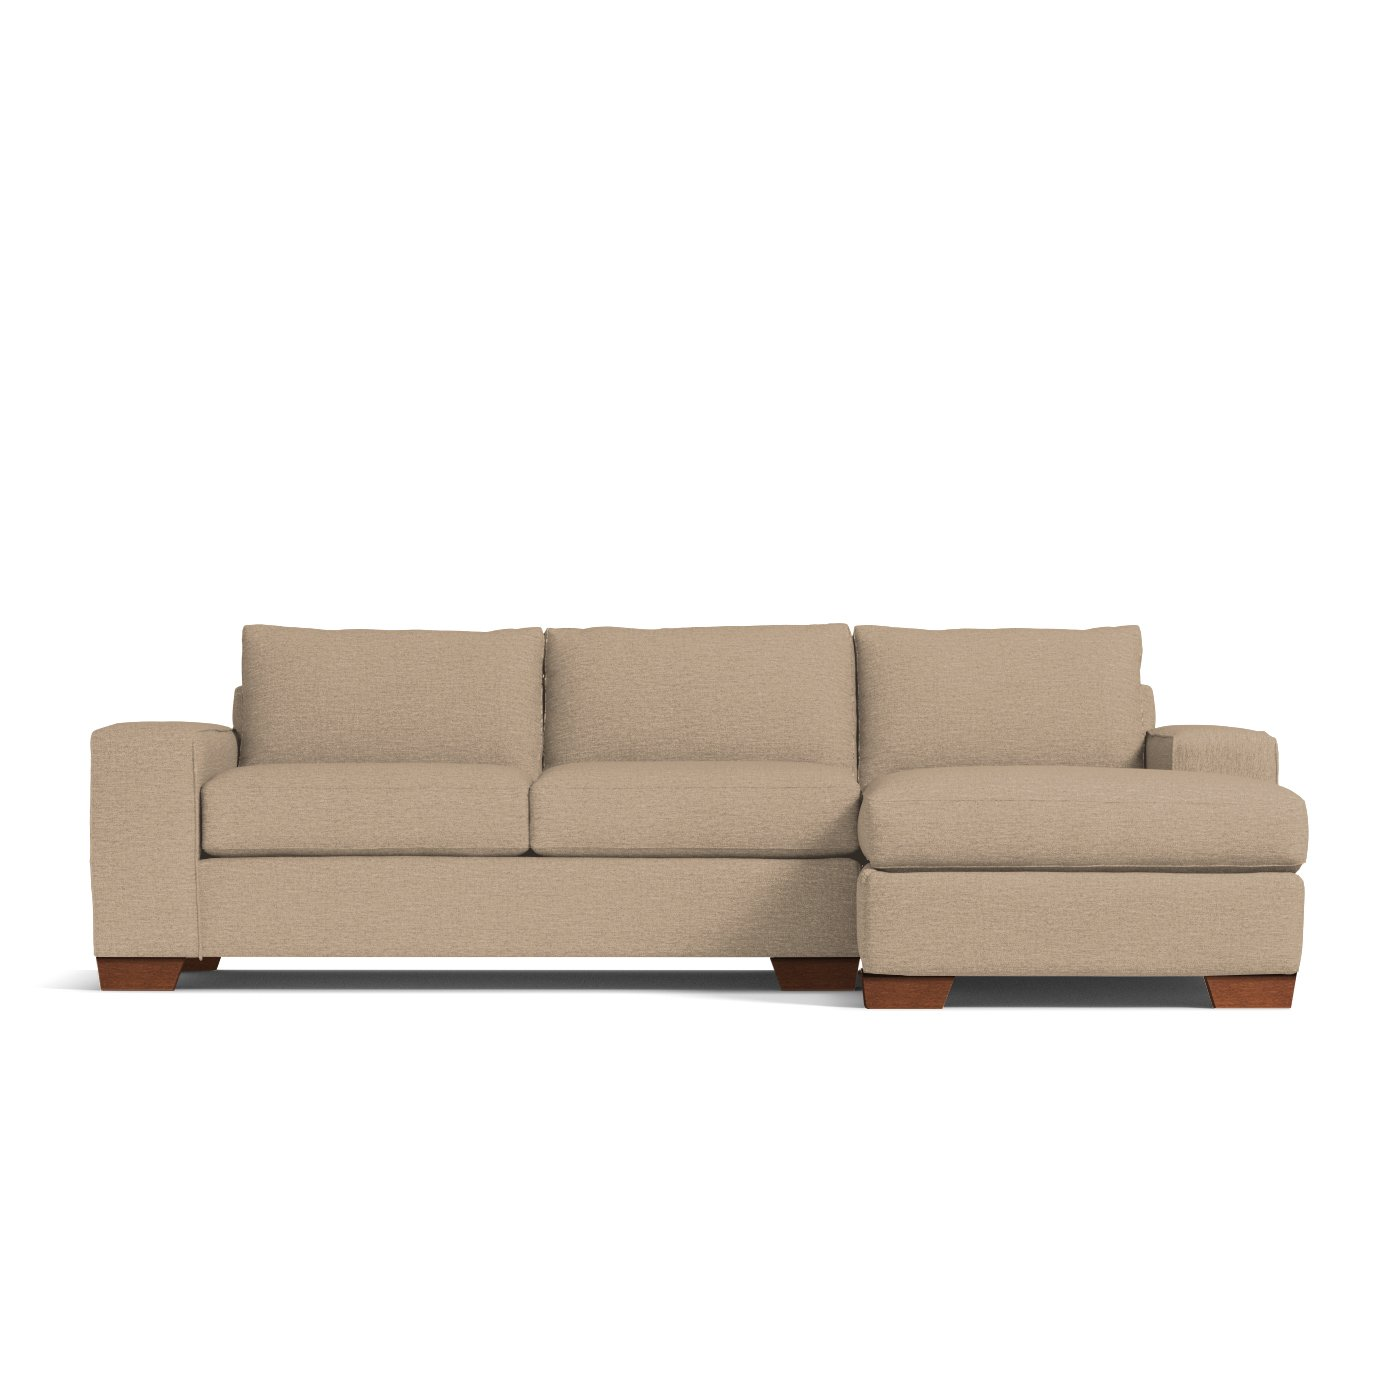 Melrose 2pc Sectional Sofa Choice of Fabrics Apt2B